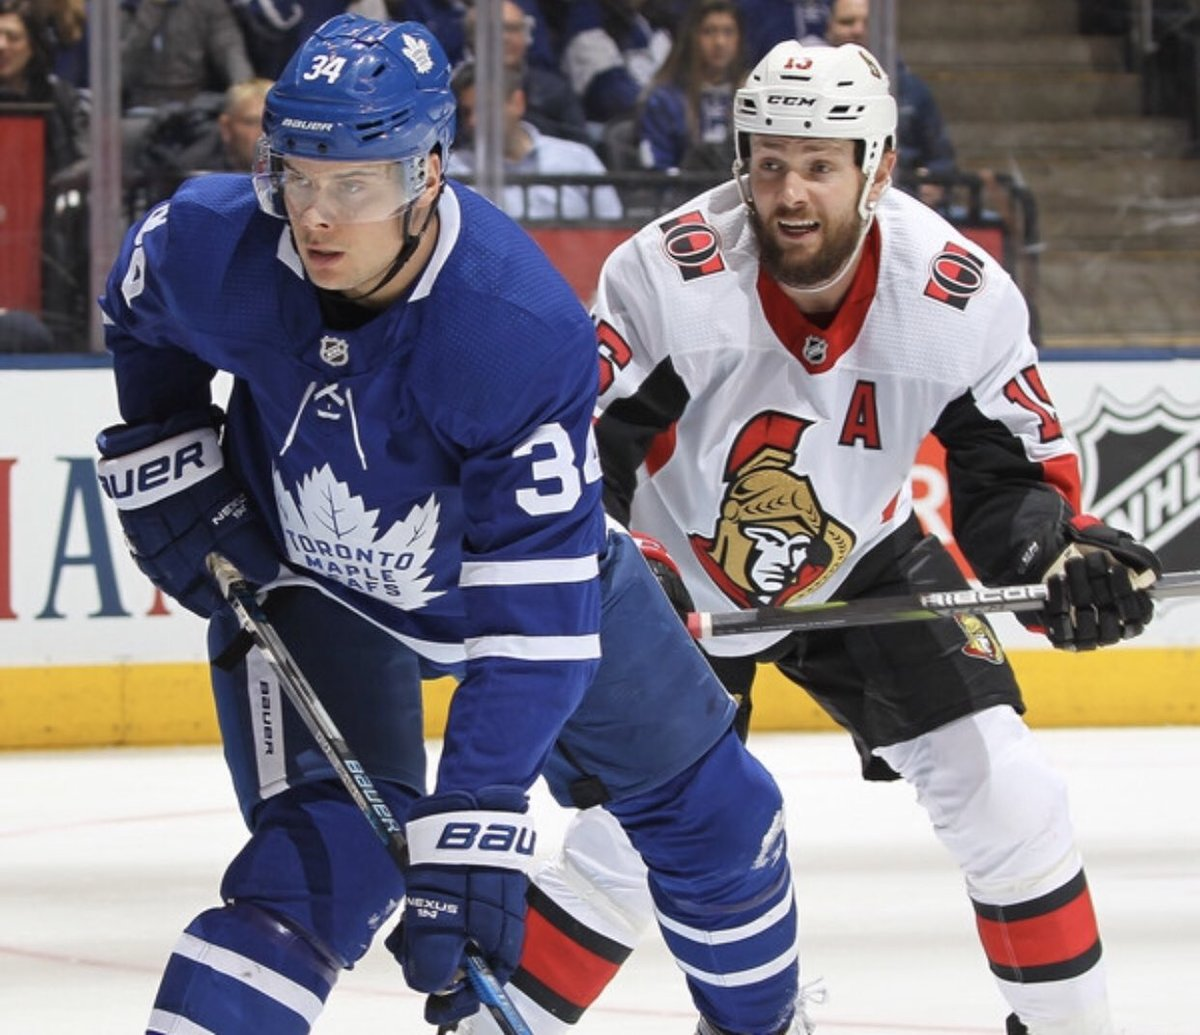 🚨🚨Today is Ticket Tuesday - RT for your chance to win either 2 Front Row or 2 Club Bell tickets to #Sens vs #Leafs on Saturday night + $100 to @Cabottos + $100 to @GiovannisOttawa + 1 night hotel stay at @BrookstreetOtt - Contest Presented by @OttCasinoRoyale 🏒🏒